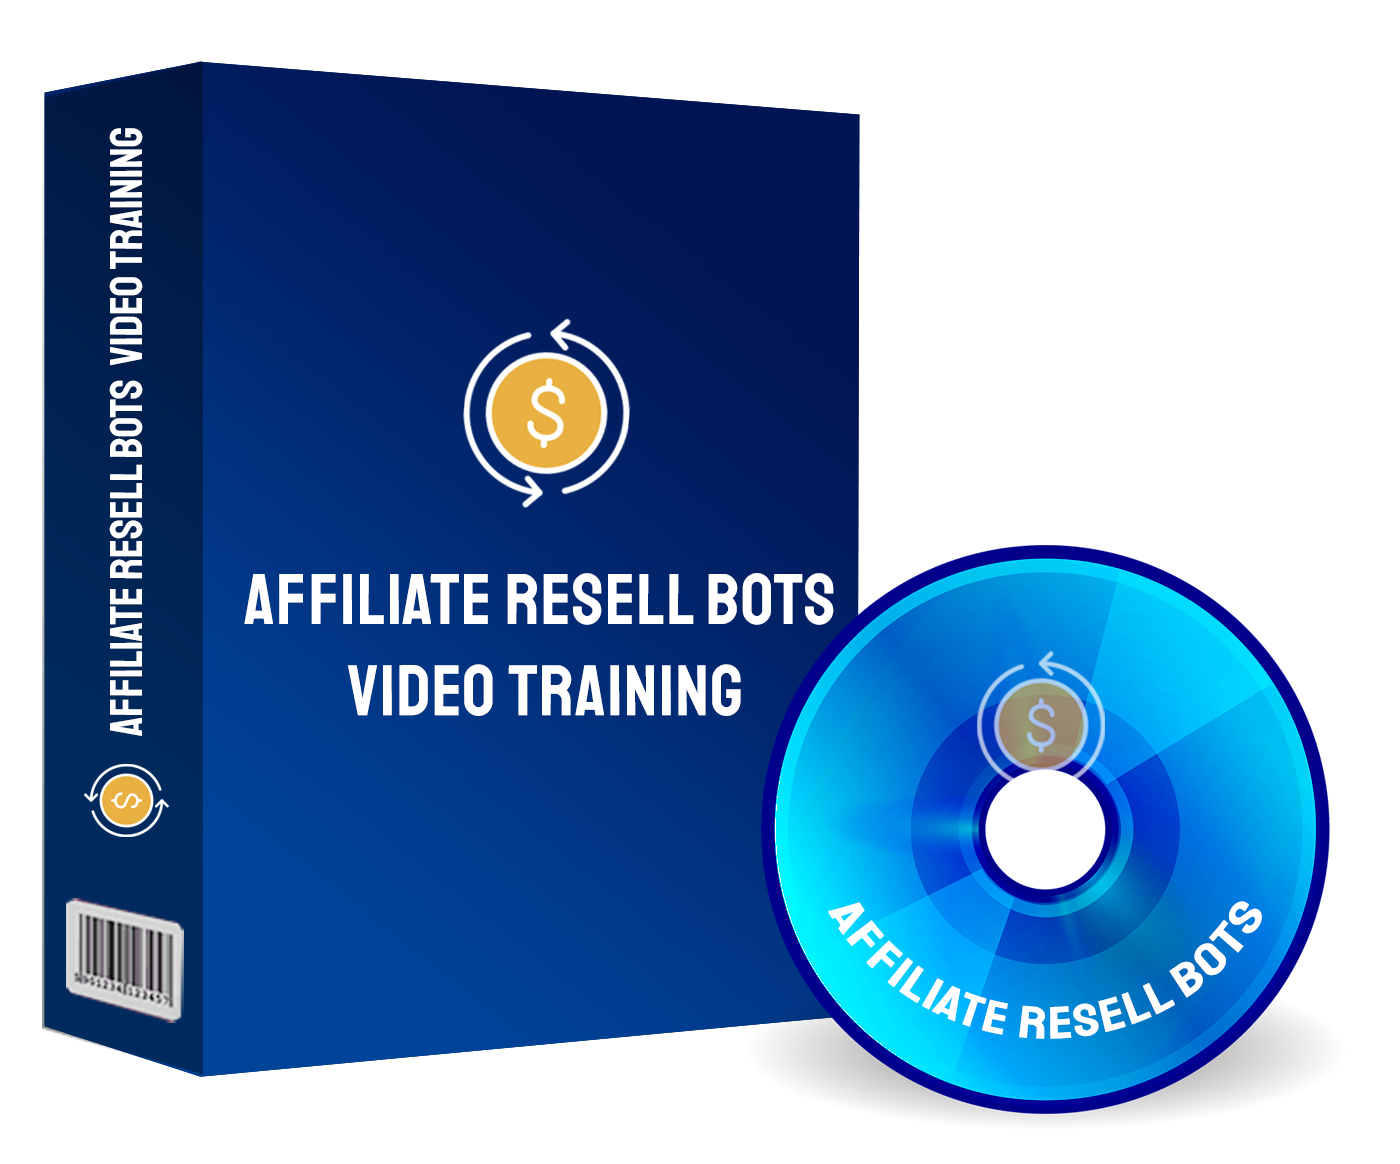 Affiliate resell bots